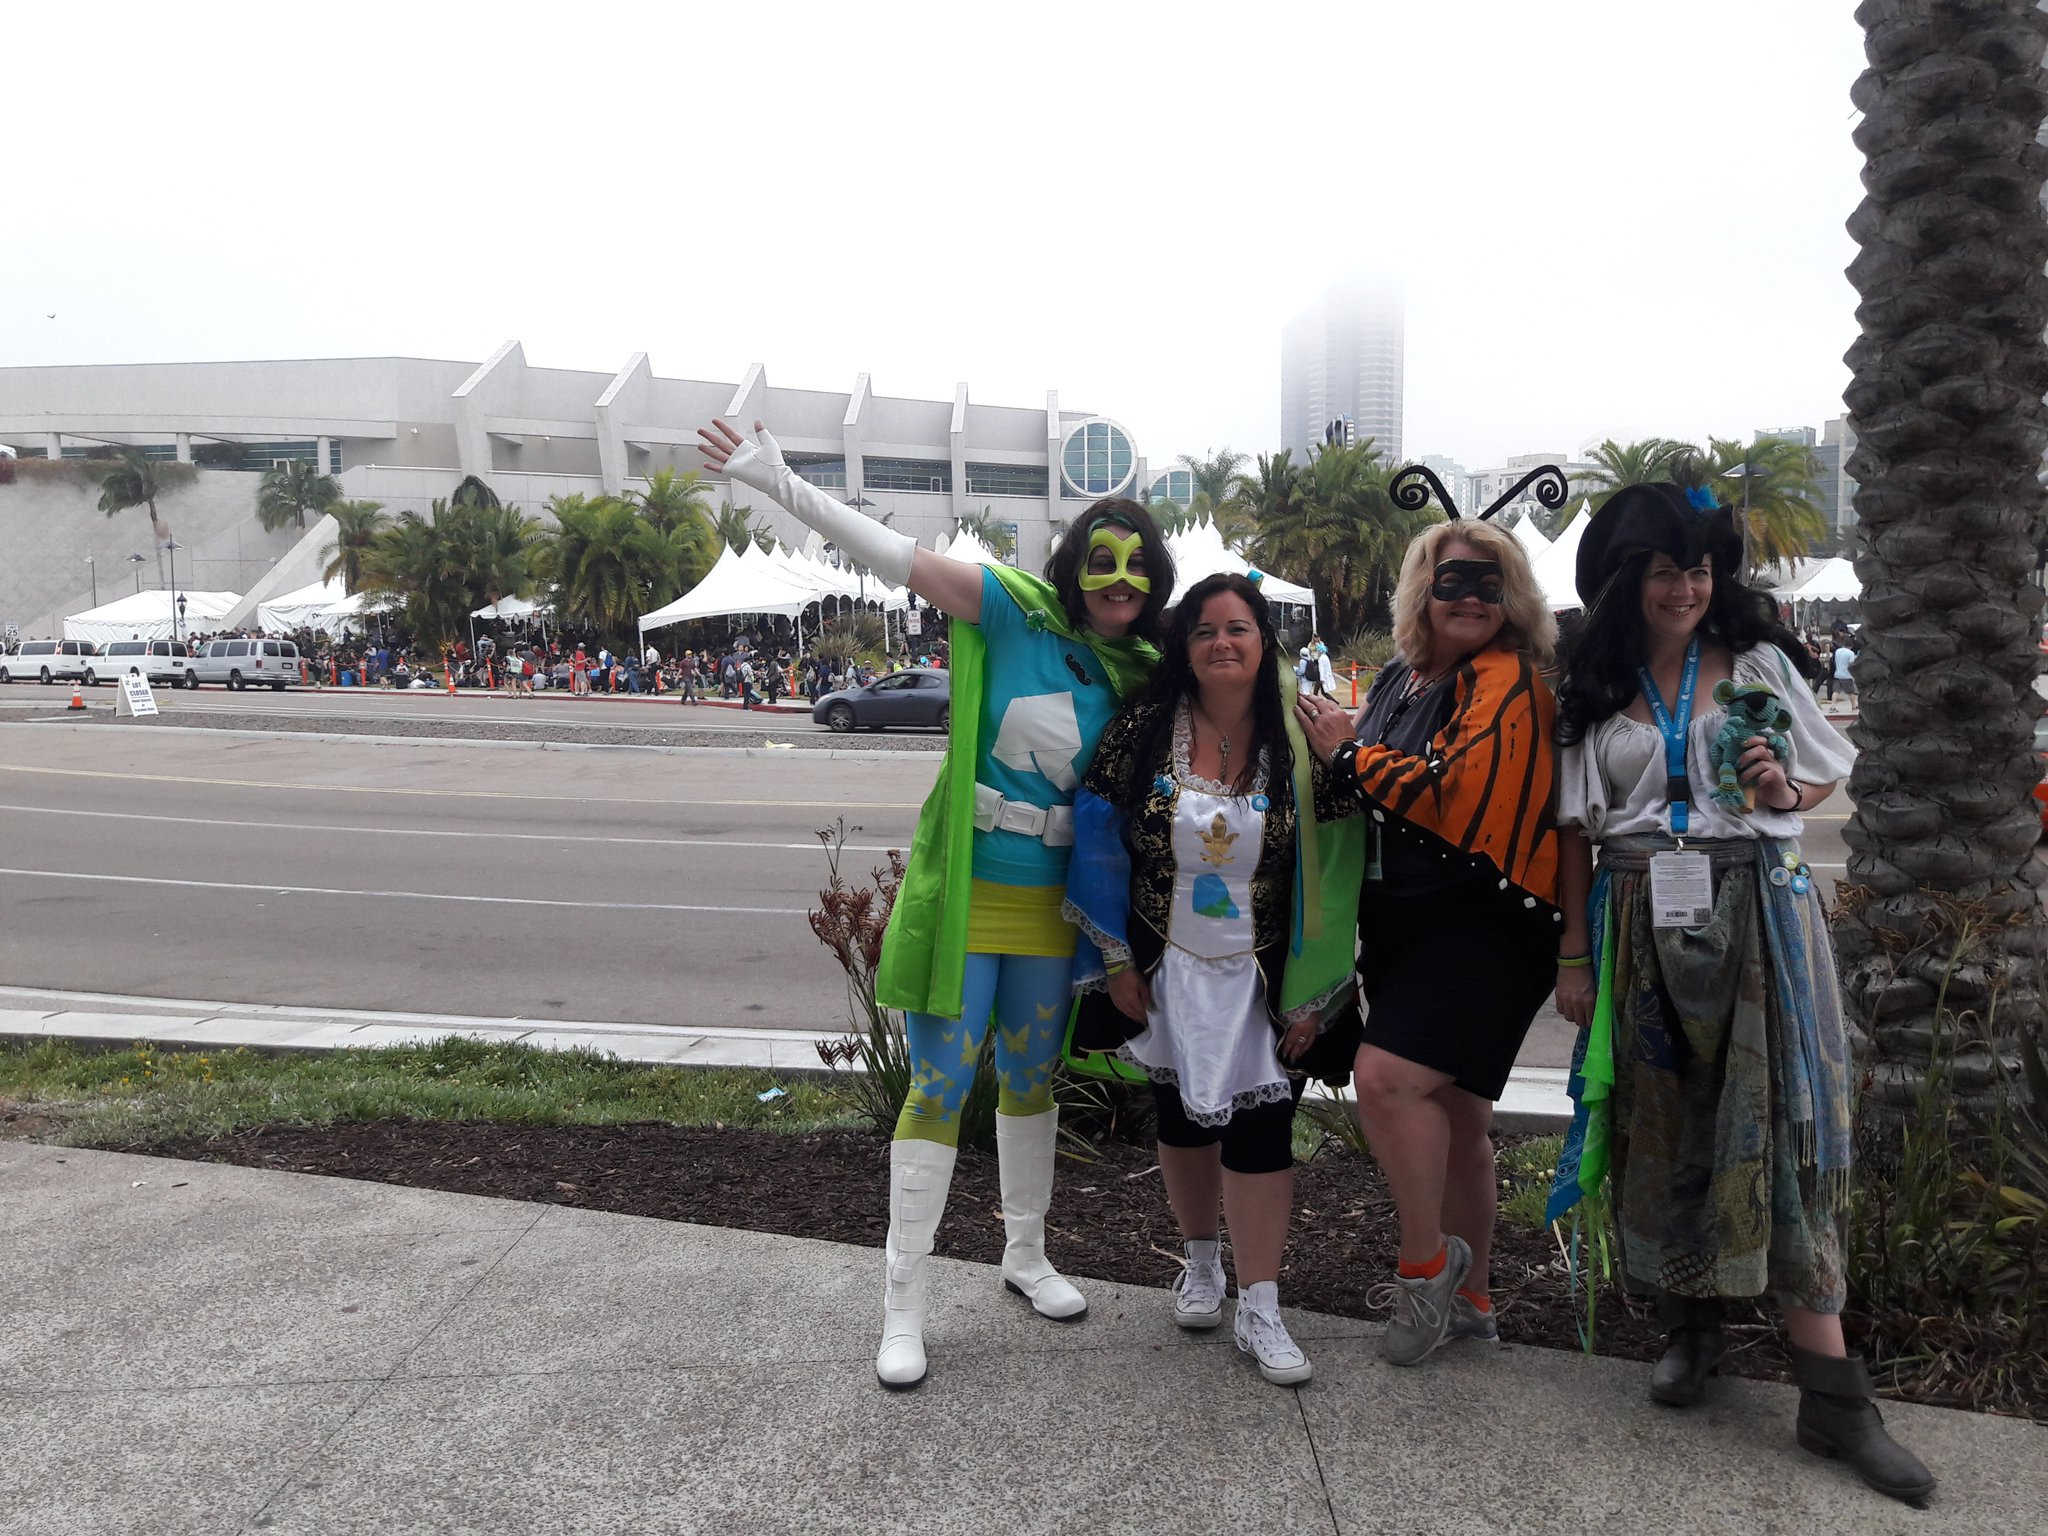 The Kindness Superheroes outside the San Diego Convention Center.